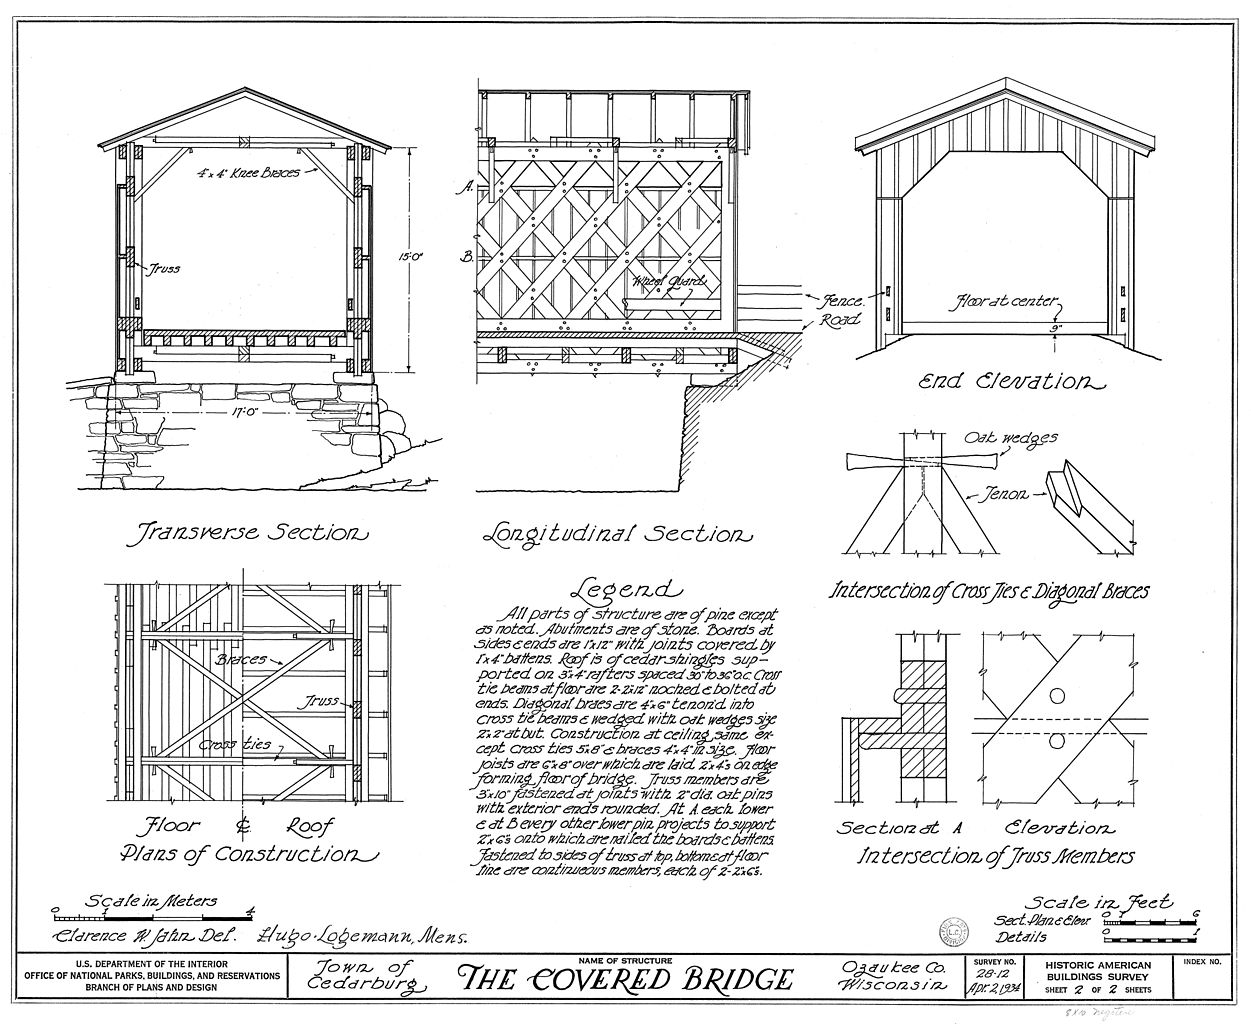 File:Historic American Buildings Survey sketch of Covered